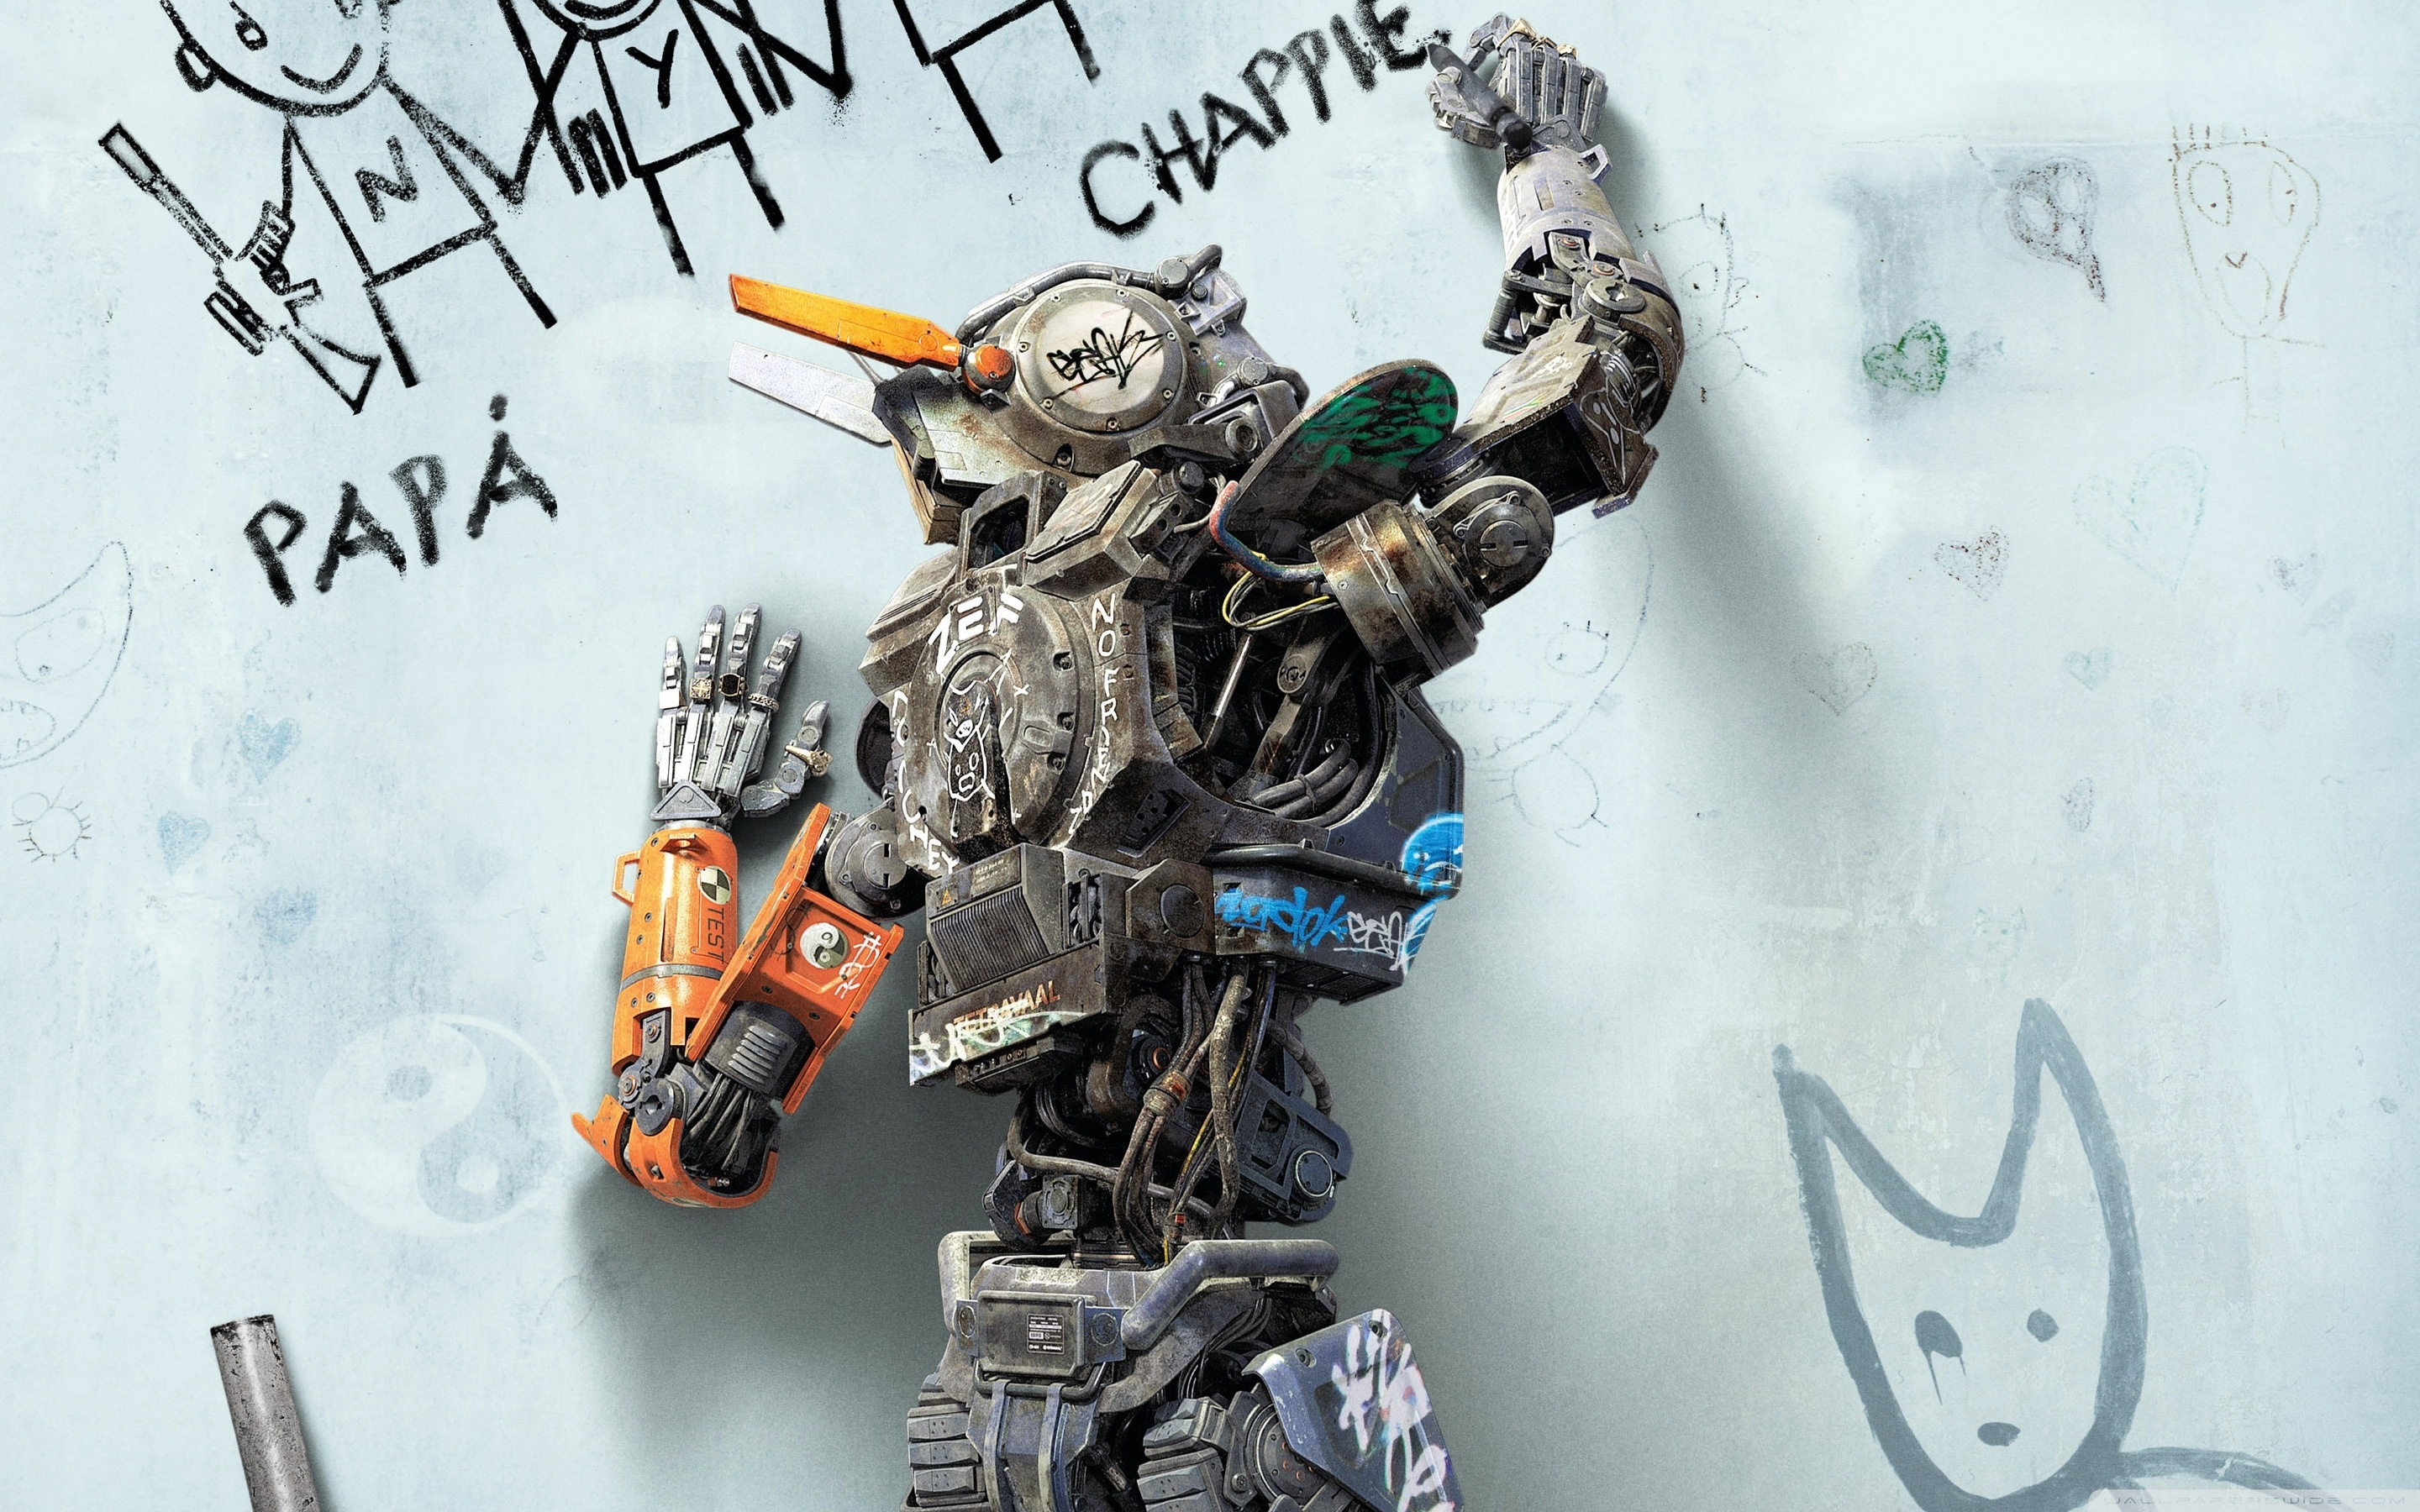 chappie 2015 movie ❤ 4k hd desktop wallpaper for 4k ultra hd tv